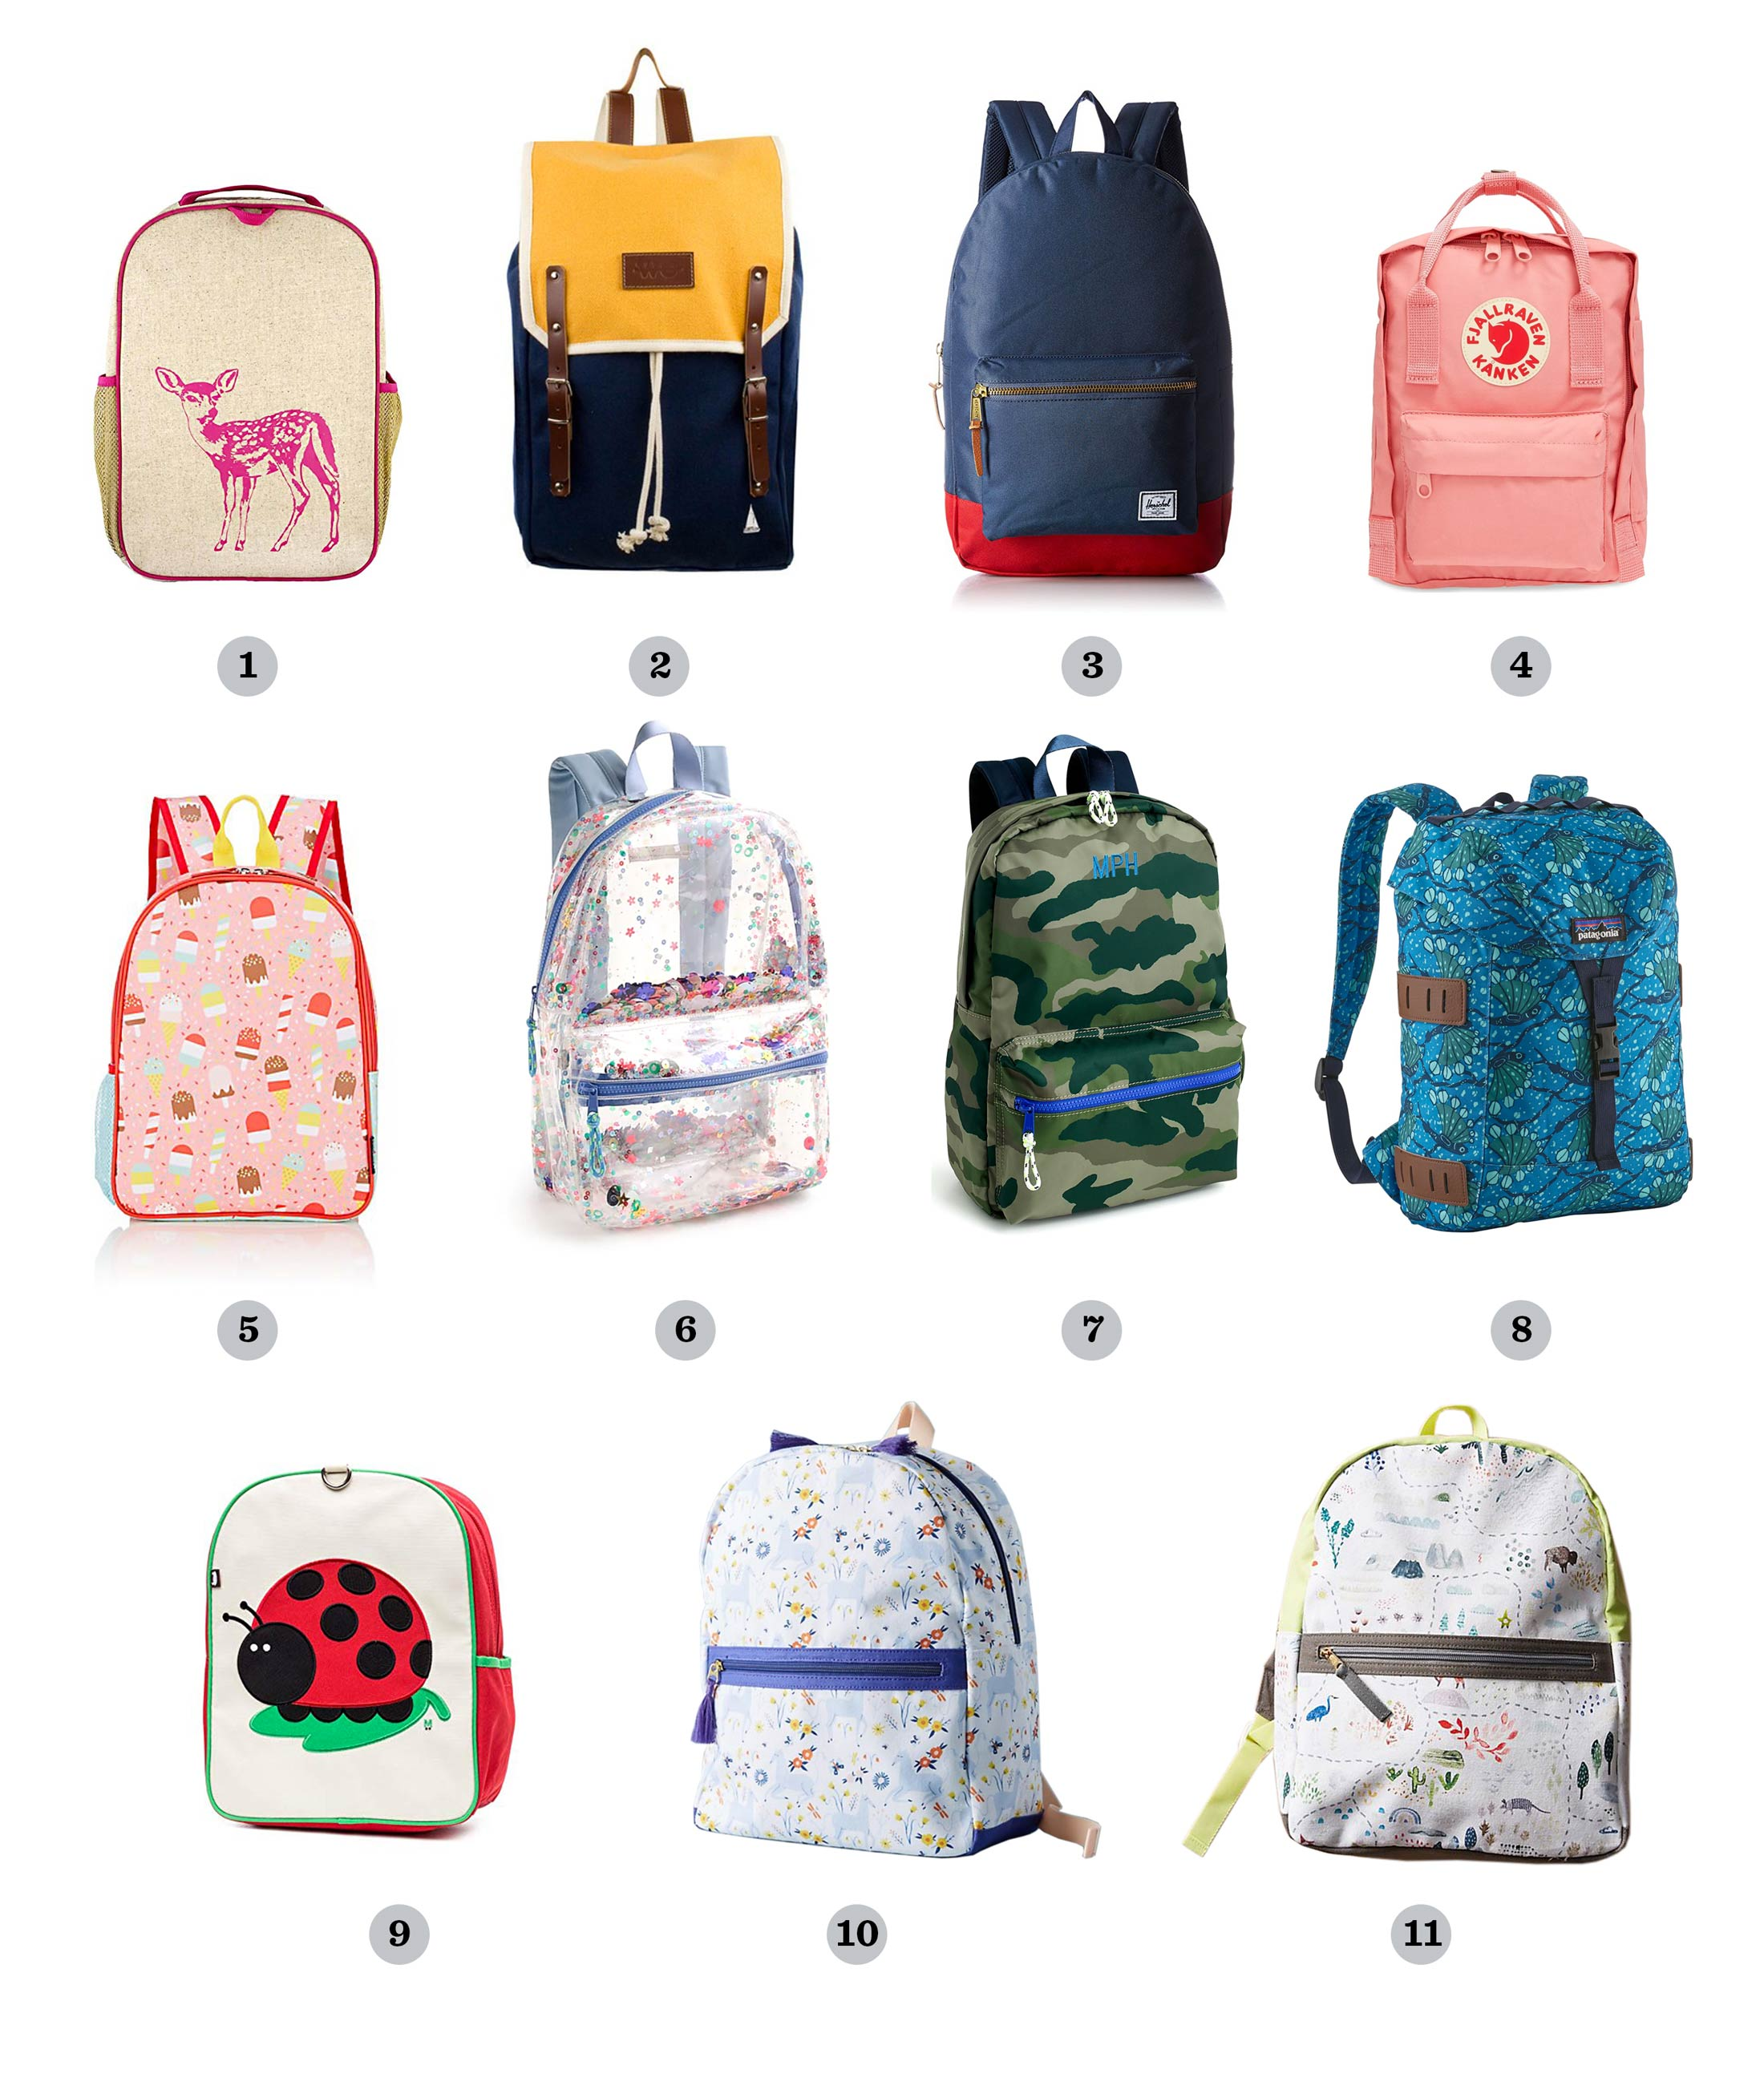 Designer backpacks we love...